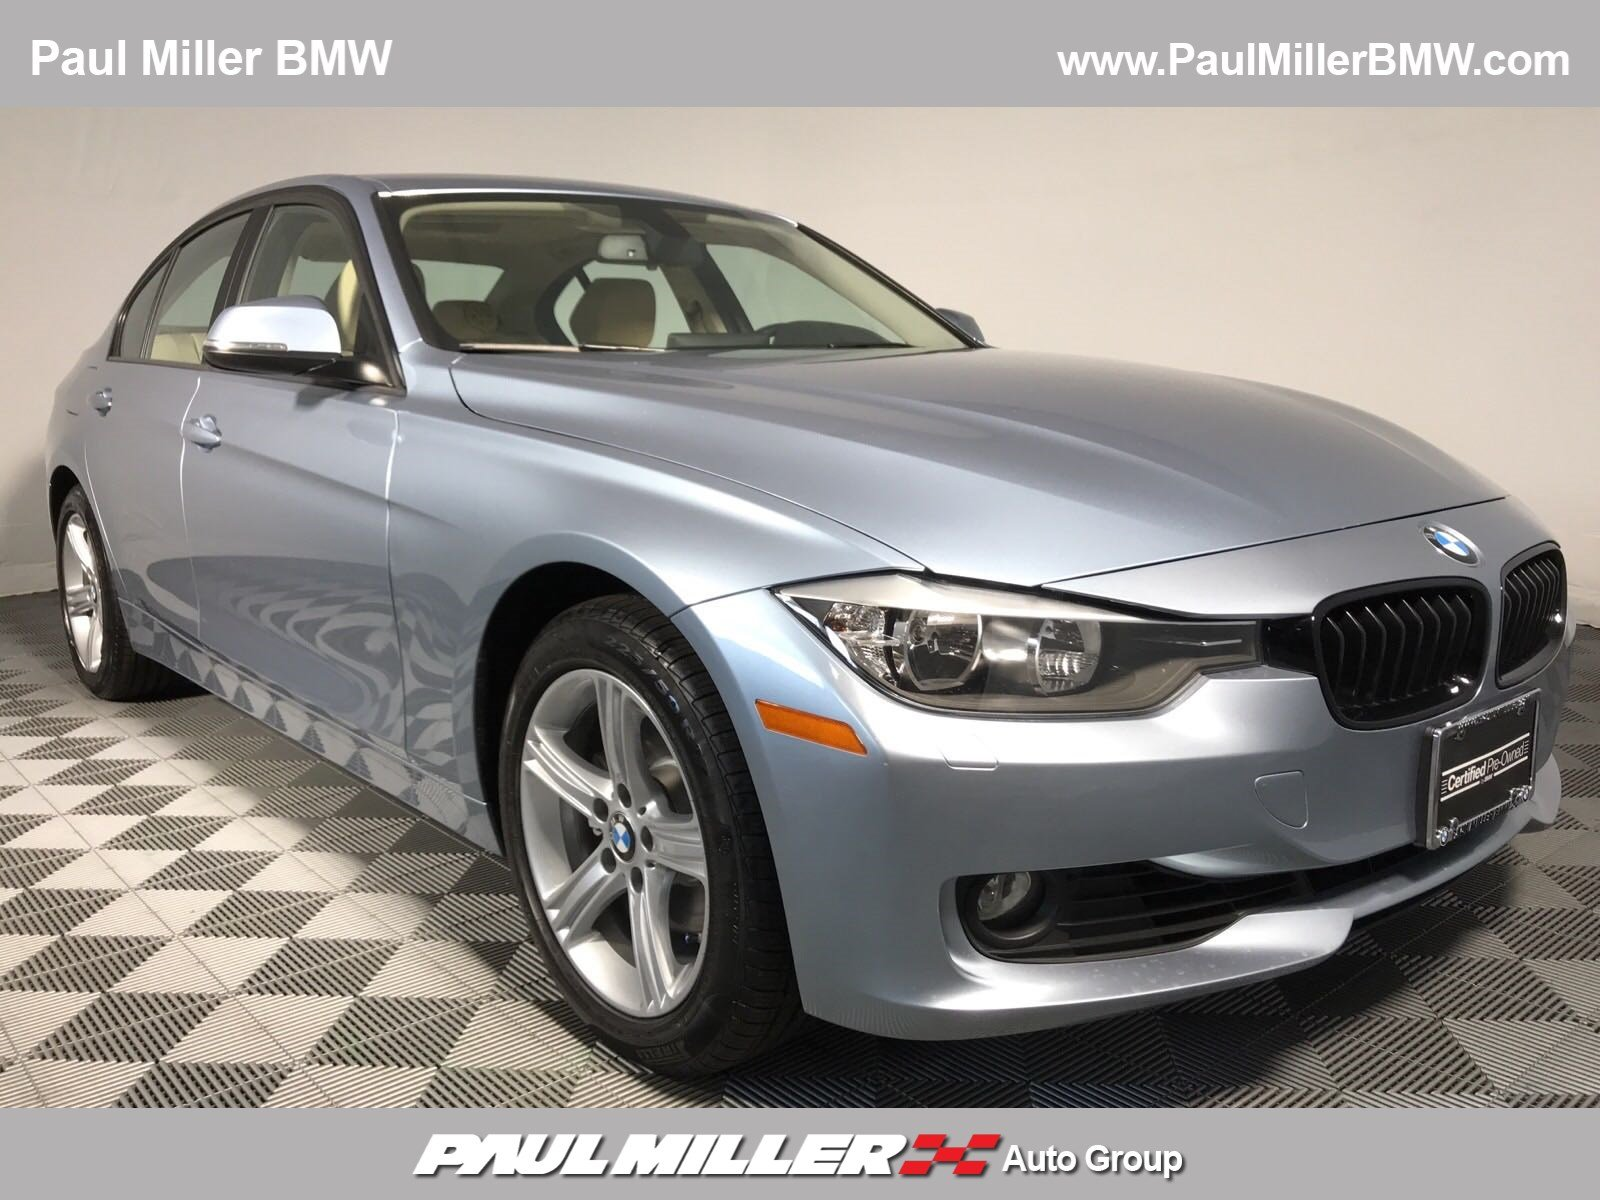 Certified PreOwned BMW Series Dr Car In Wayne F - 2013bmw